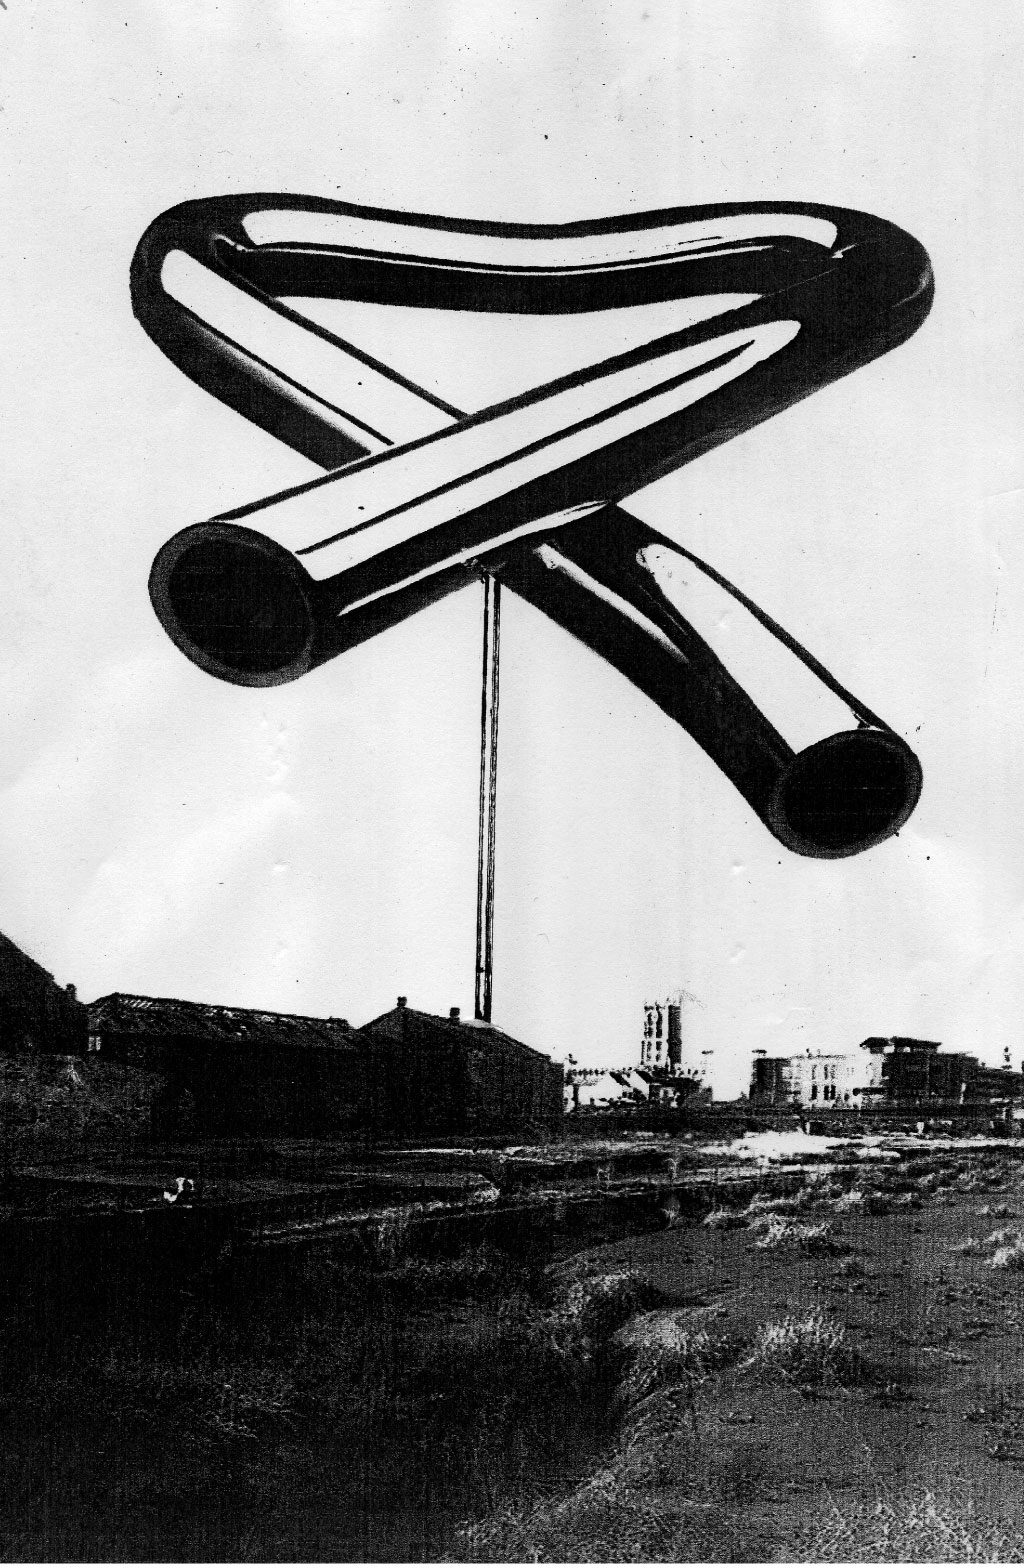 A Tubular Bell for Hull, from A Better Britain, 2010.